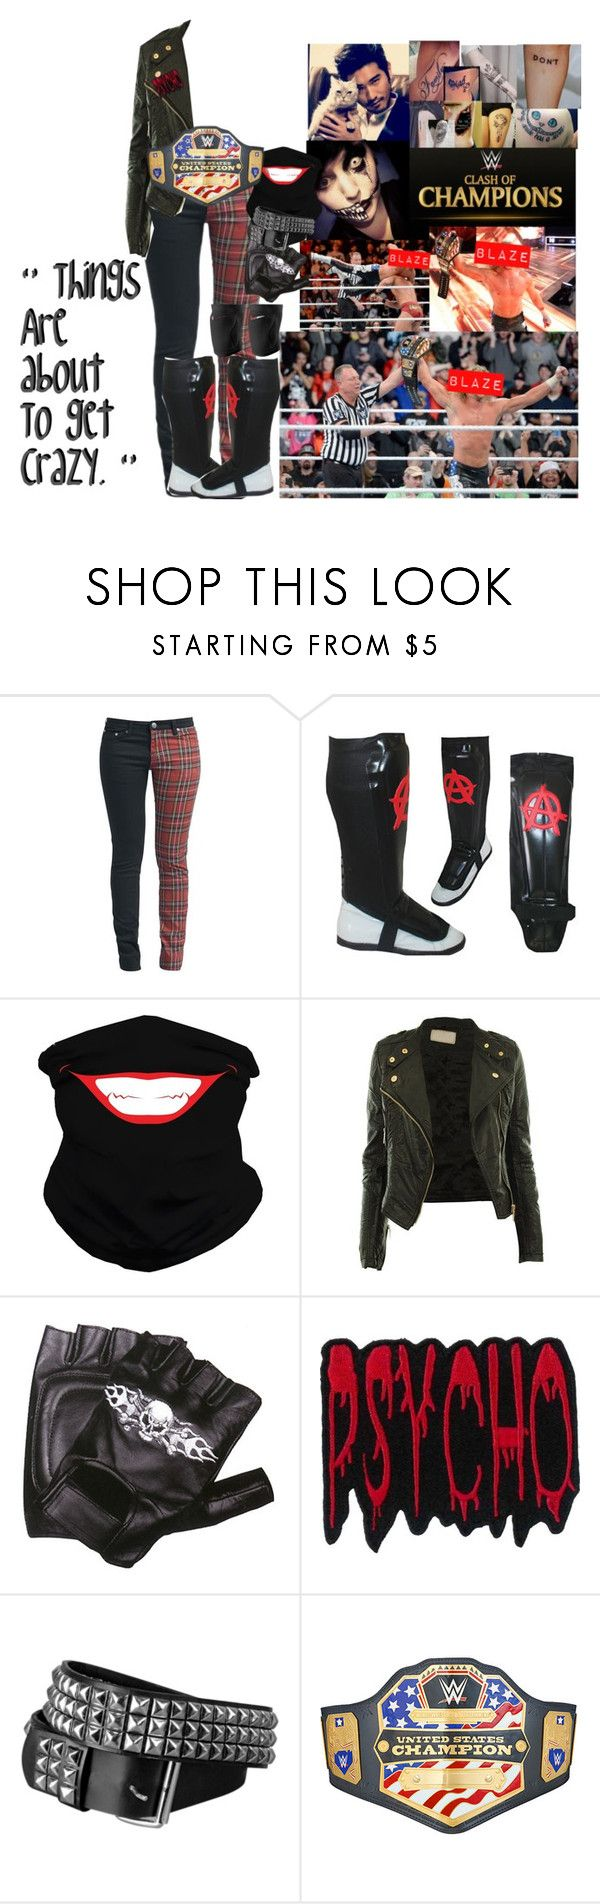 """""""😝 Blaze Michaels 😝- Clash Of Champions 🔵 Winning The United States Championship"""" by iron-maiden-amy ❤ liked on Polyvore featuring WWE, Rock Rebel, Am Black, NIKE, Hot Topic, men's fashion, menswear, wweoc, wweattire and wweocattire"""